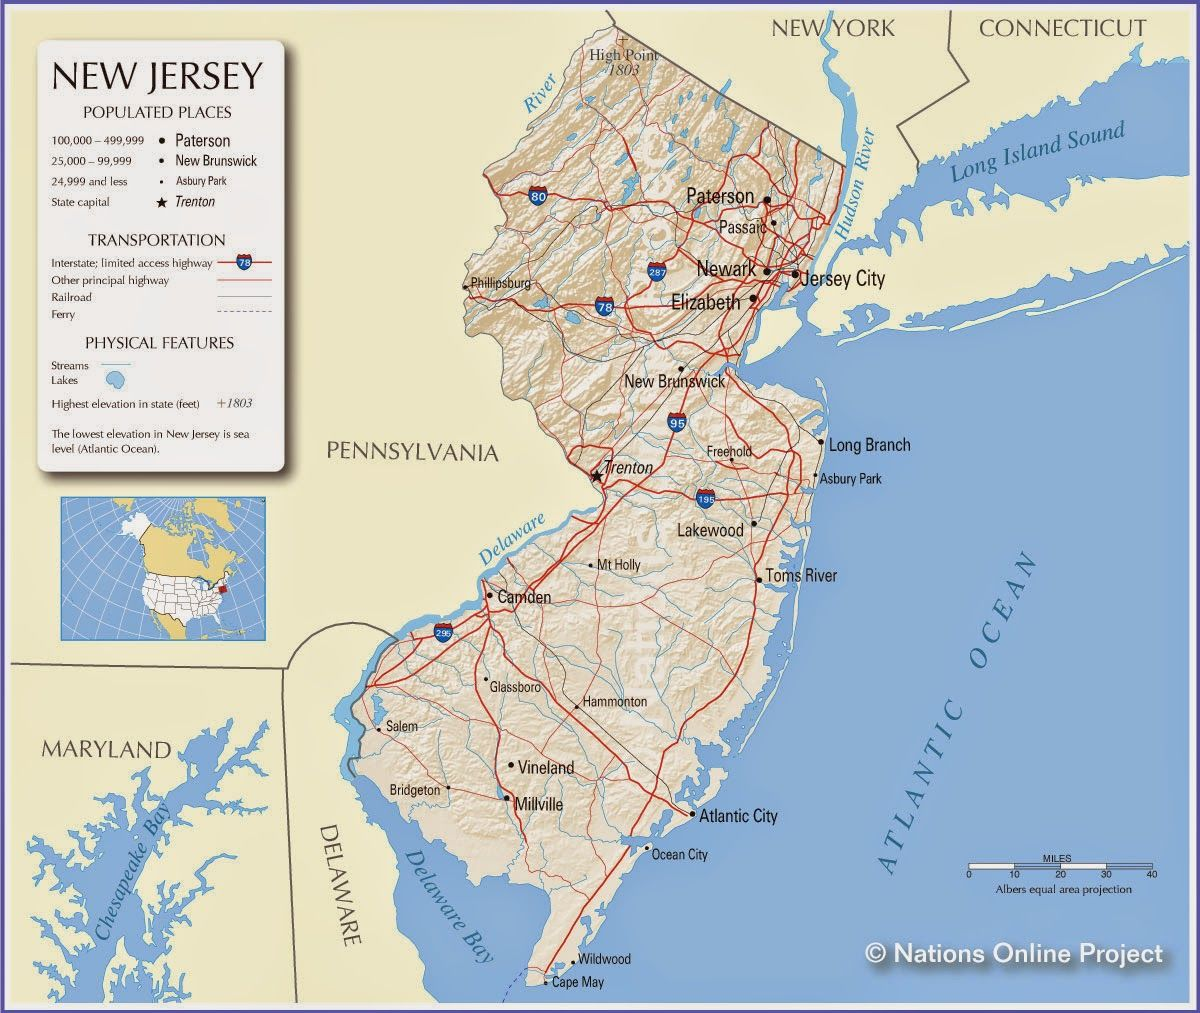 NEW JERSEY STATE OF NEW JERSEY U S Geography New Jersey